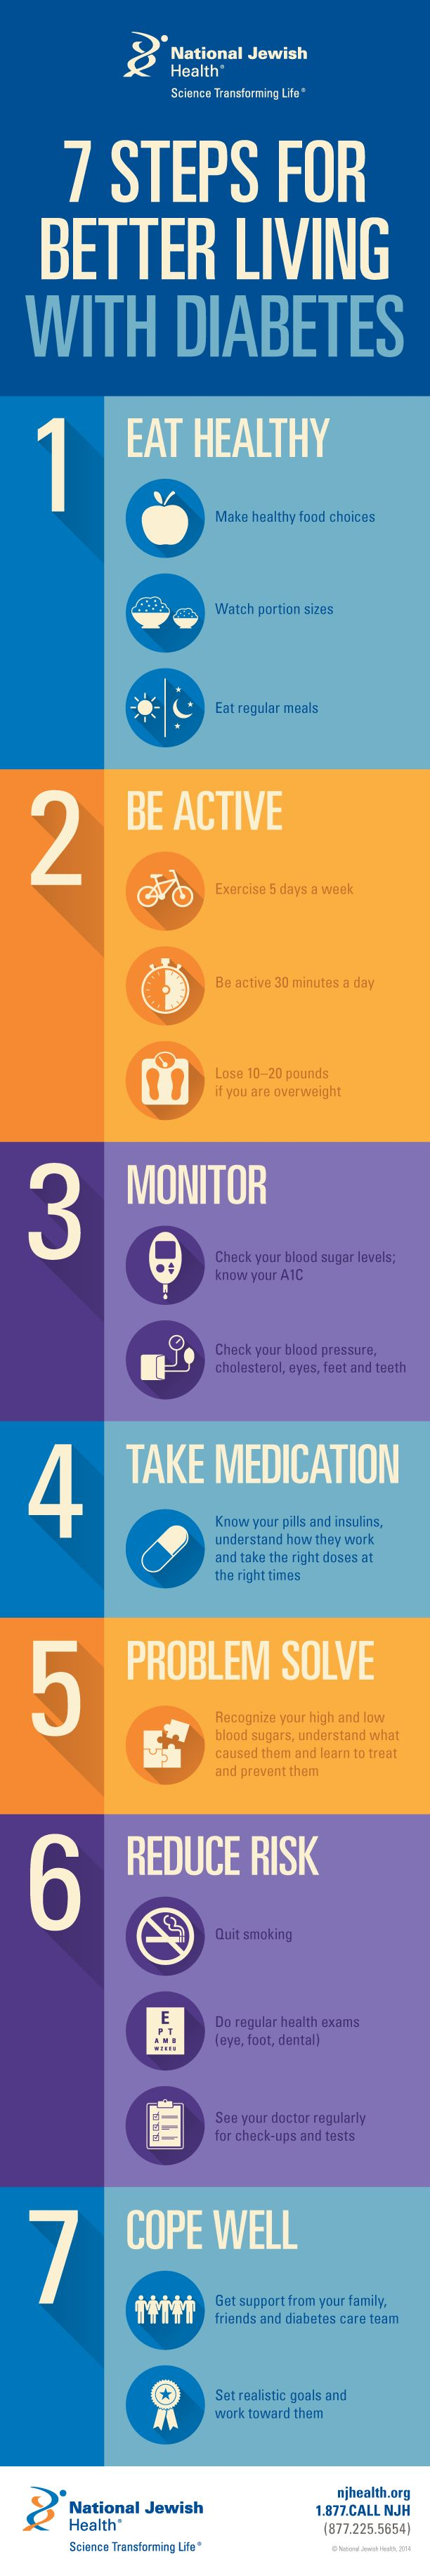 While there isn't yet a cure for #diabetes, the condition can be managed. Know the top seven steps for better living with diabetes, and gather a support team around you. Our certified diabetes educators provide medical and nutritional consults, show you how to check your blood sugar and properly take medication, and teach weekly diabetes education classes to patients and the public.